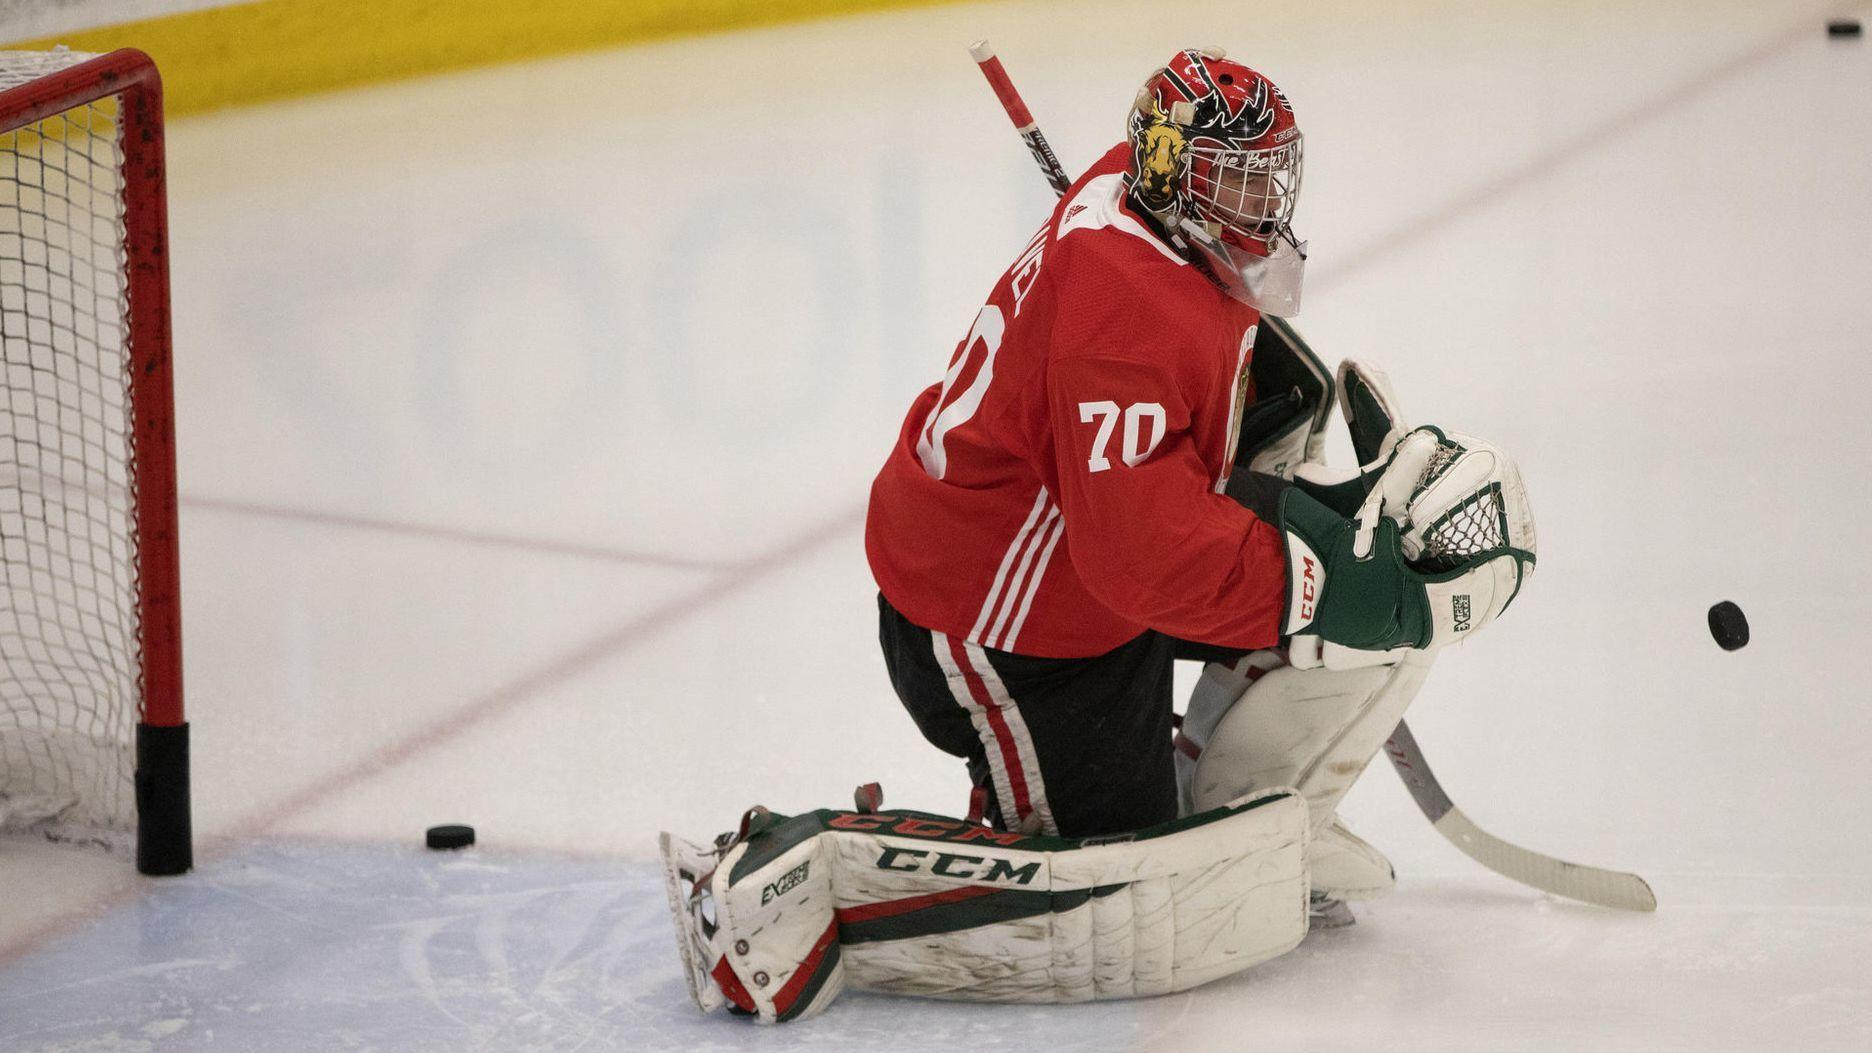 b1724585e0a How did these Blackhawks prospects become goalies  Let us count the ways -  Chicago Tribune